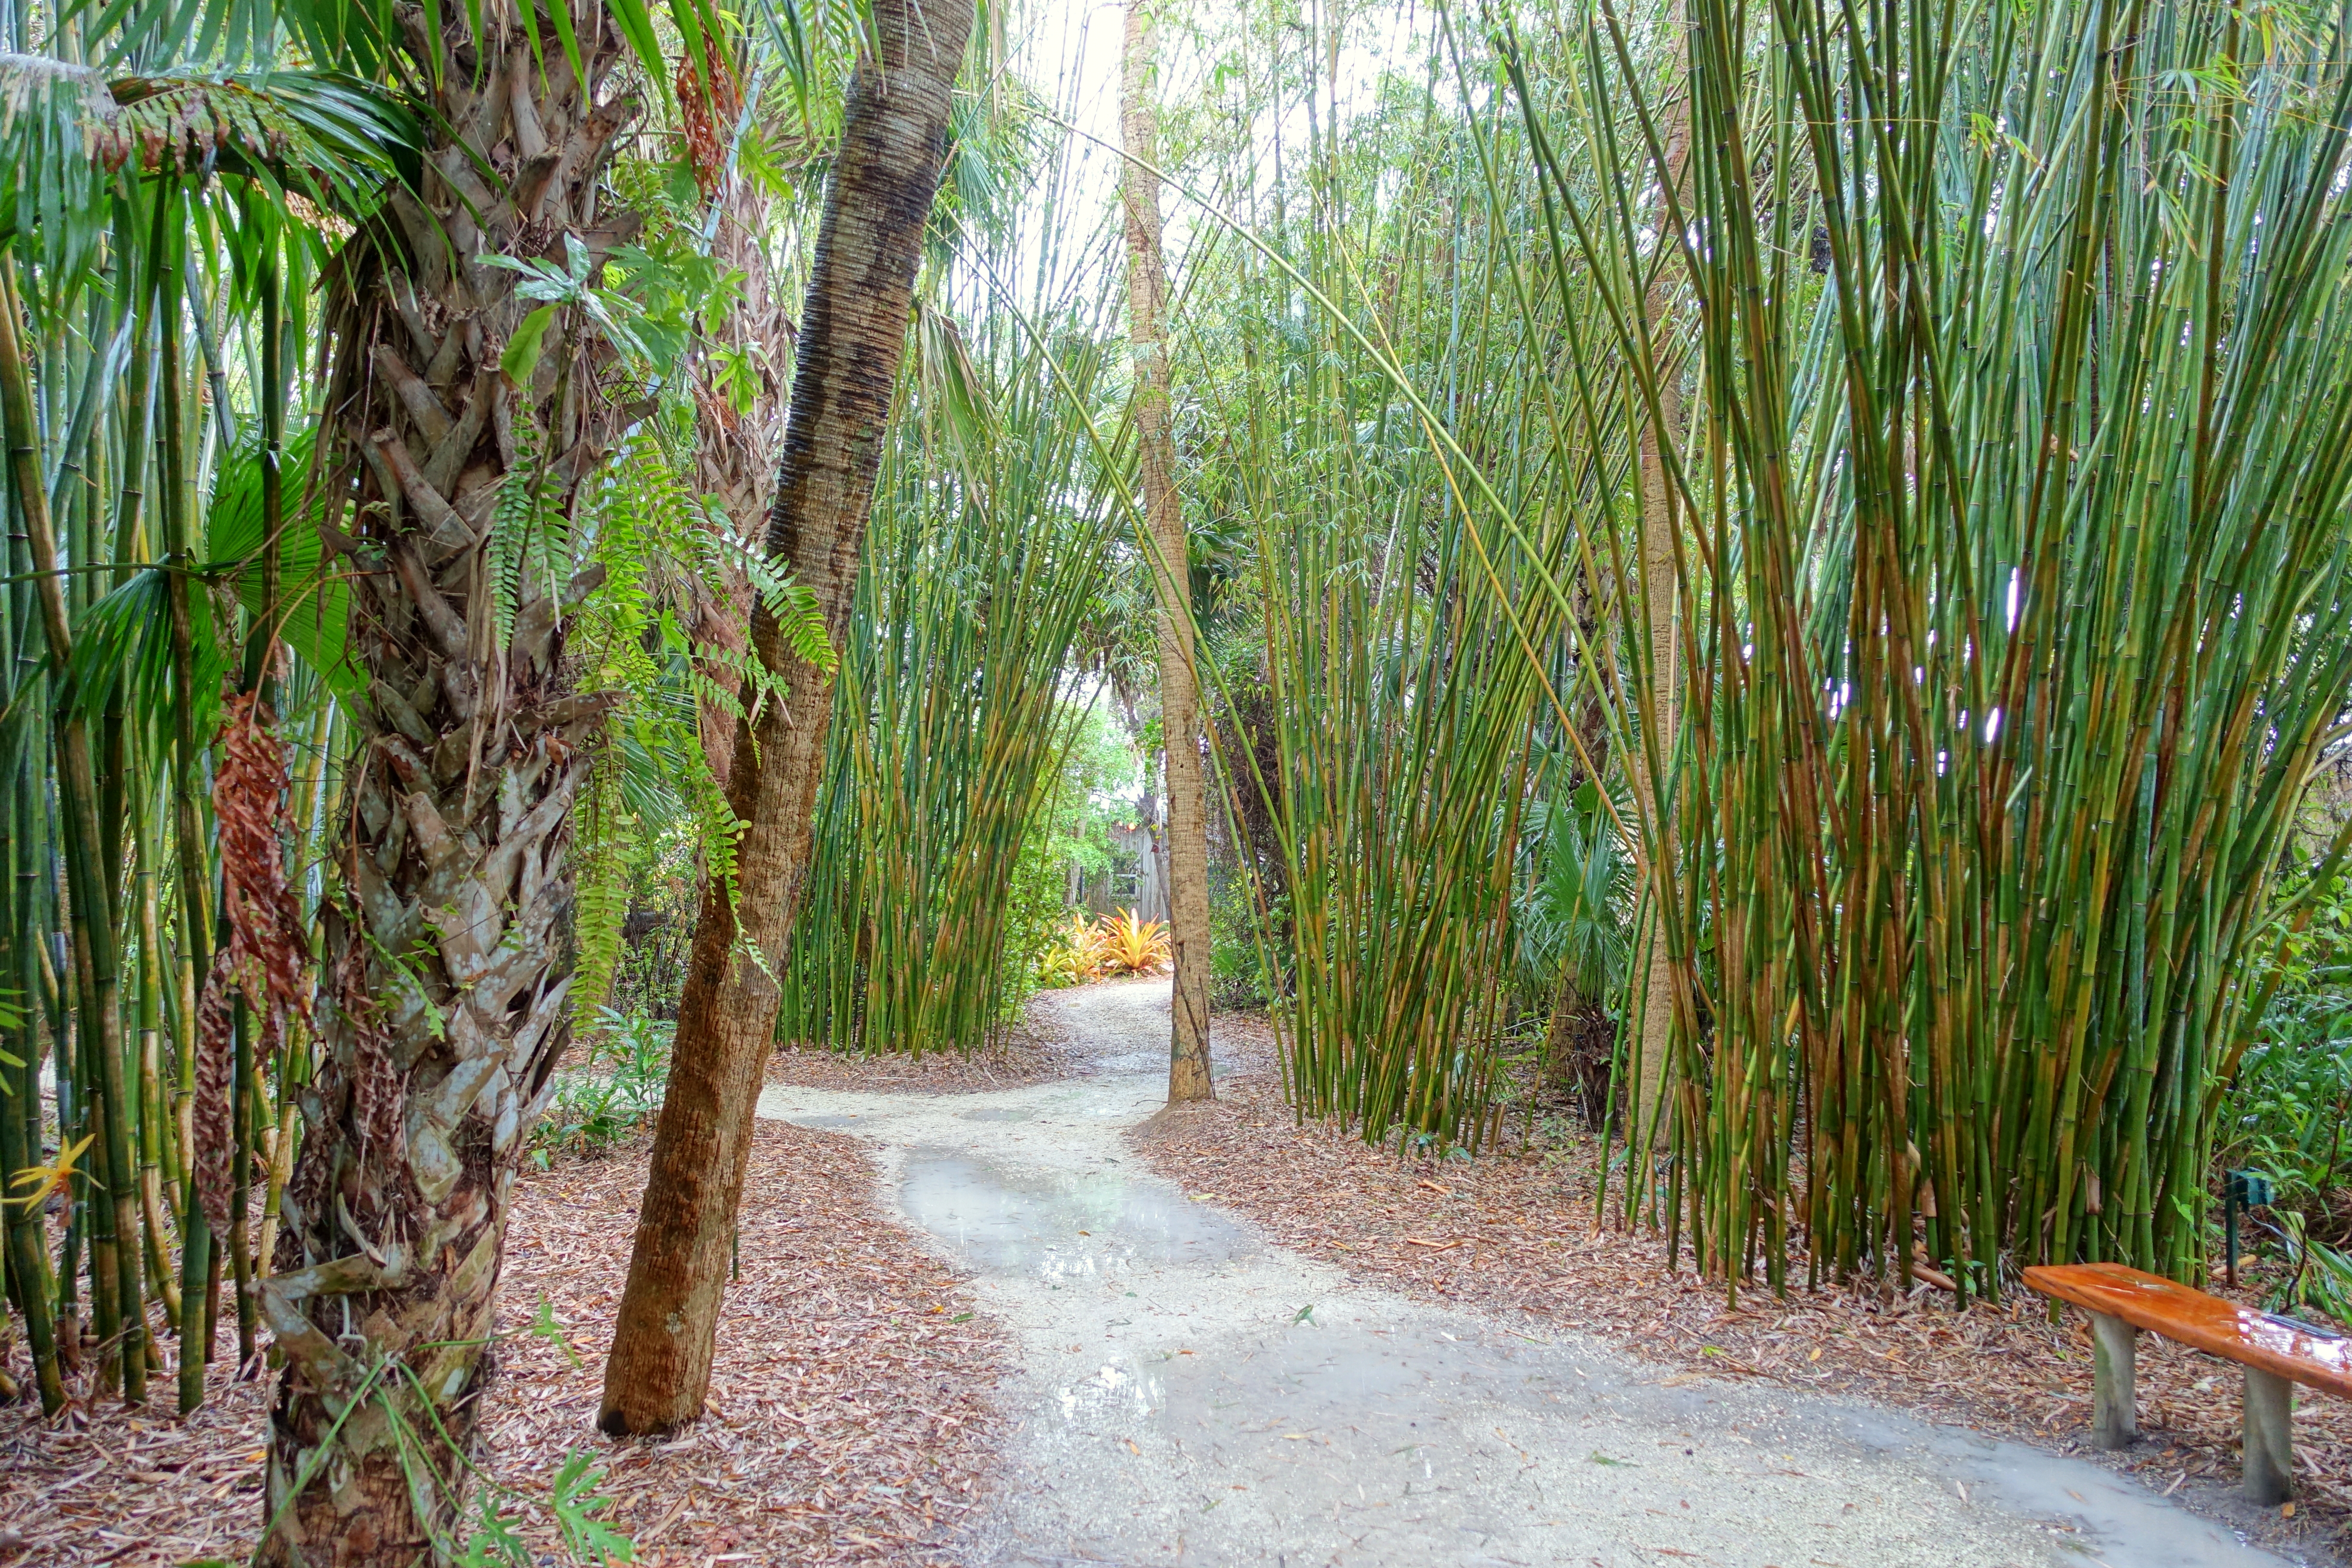 File:Bamboo groves - McKee Botanical Garden - Vero Beach, Florida ...